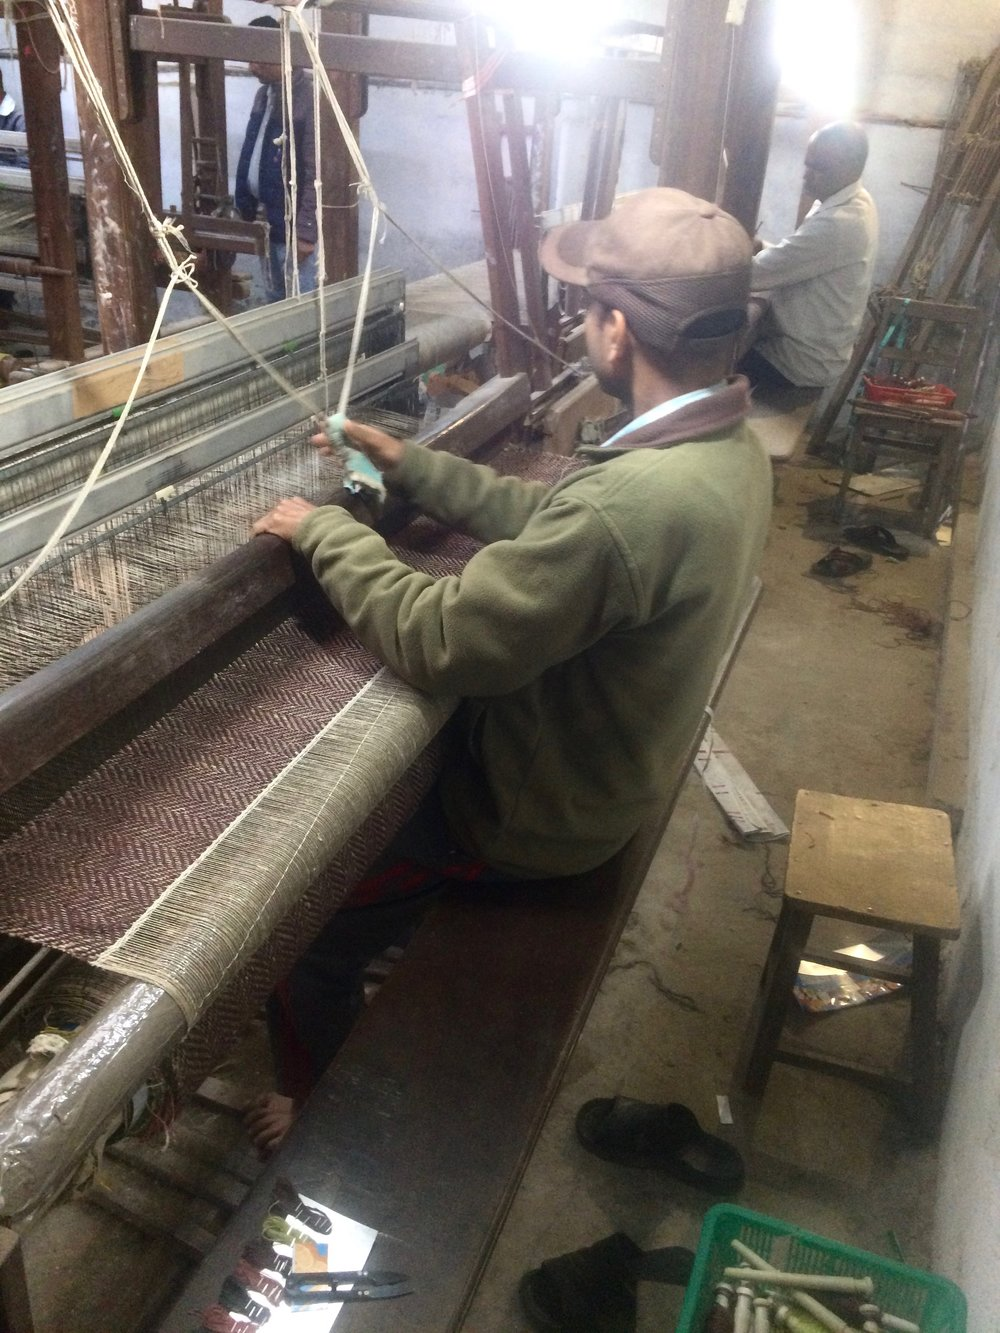 Weavers starting their day on the looms